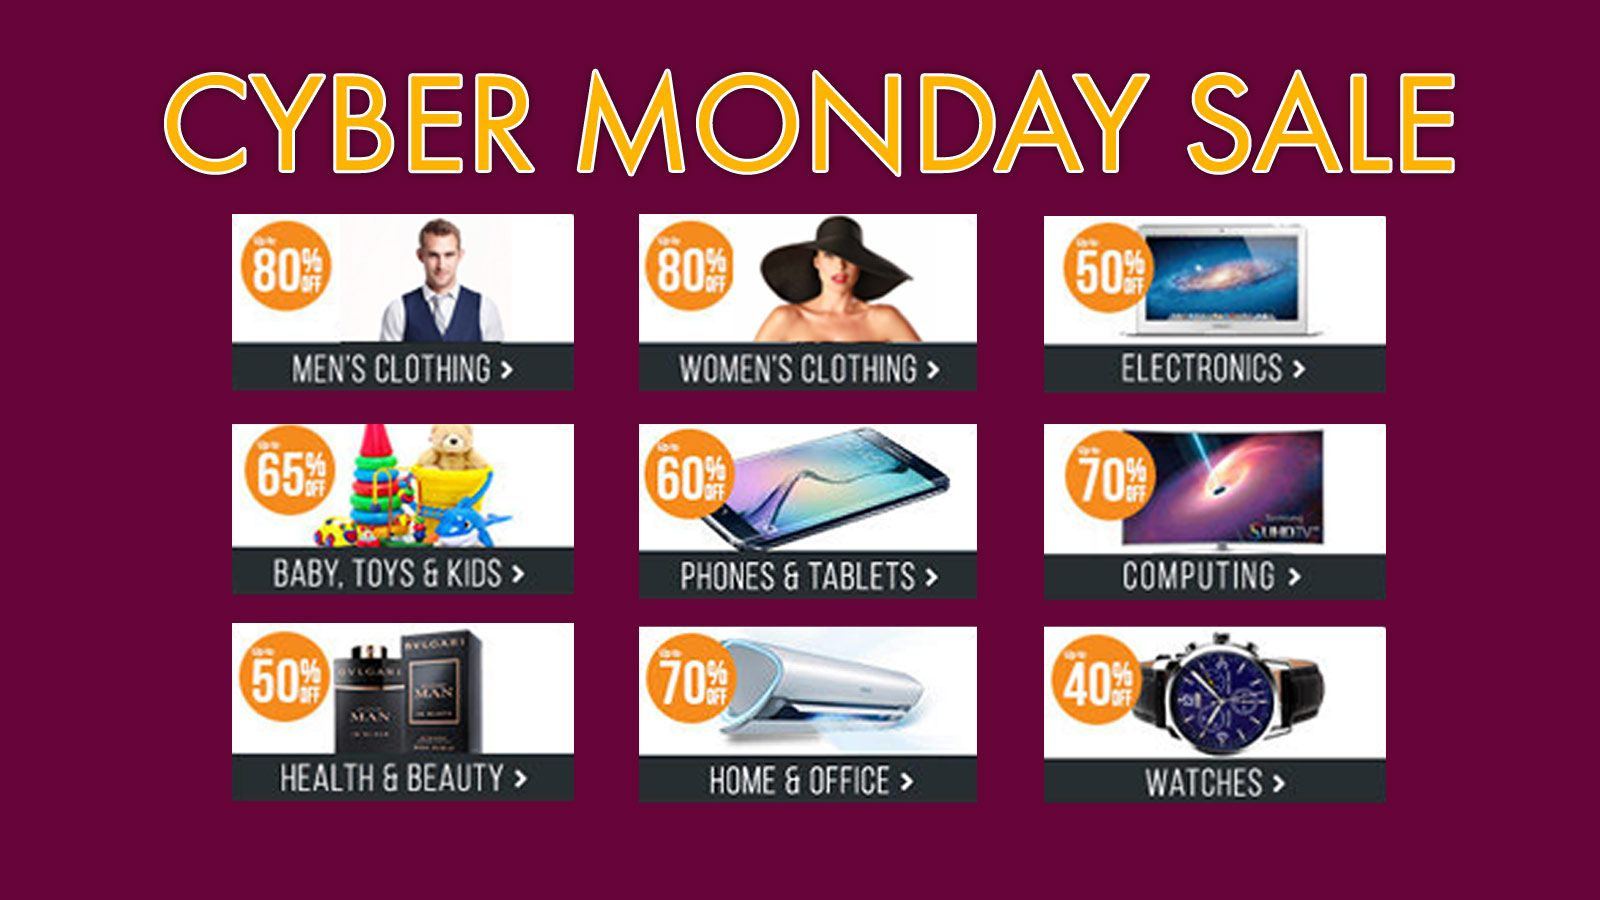 Cyber Monday Idcounts On Apparel Electronics Footwear Home Appliances And More Cyber Monday Cyber Monday Sales Home Appliances